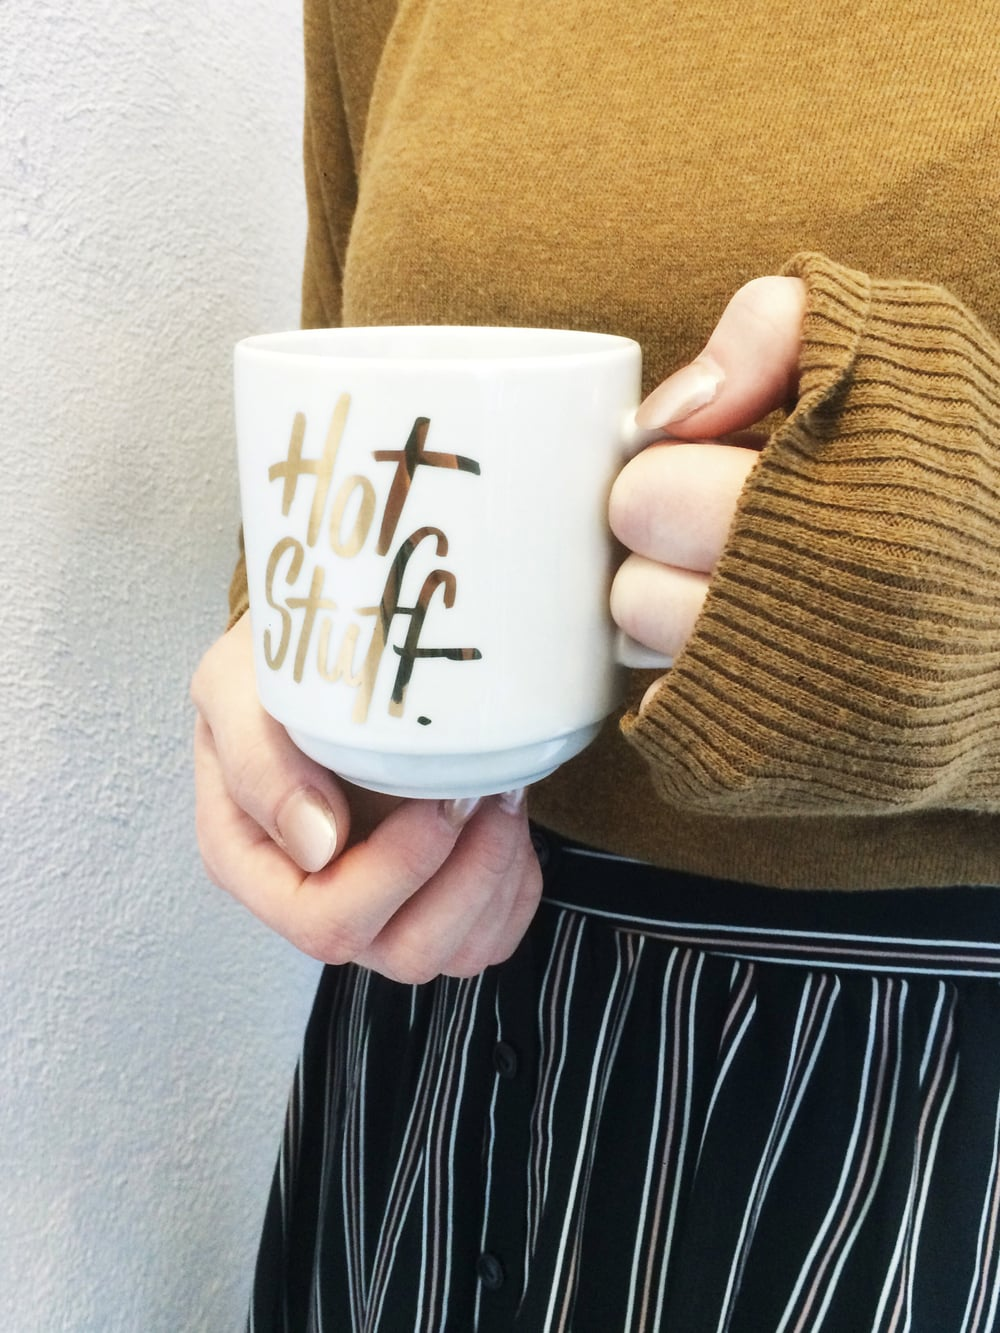 Shop this mug  here !